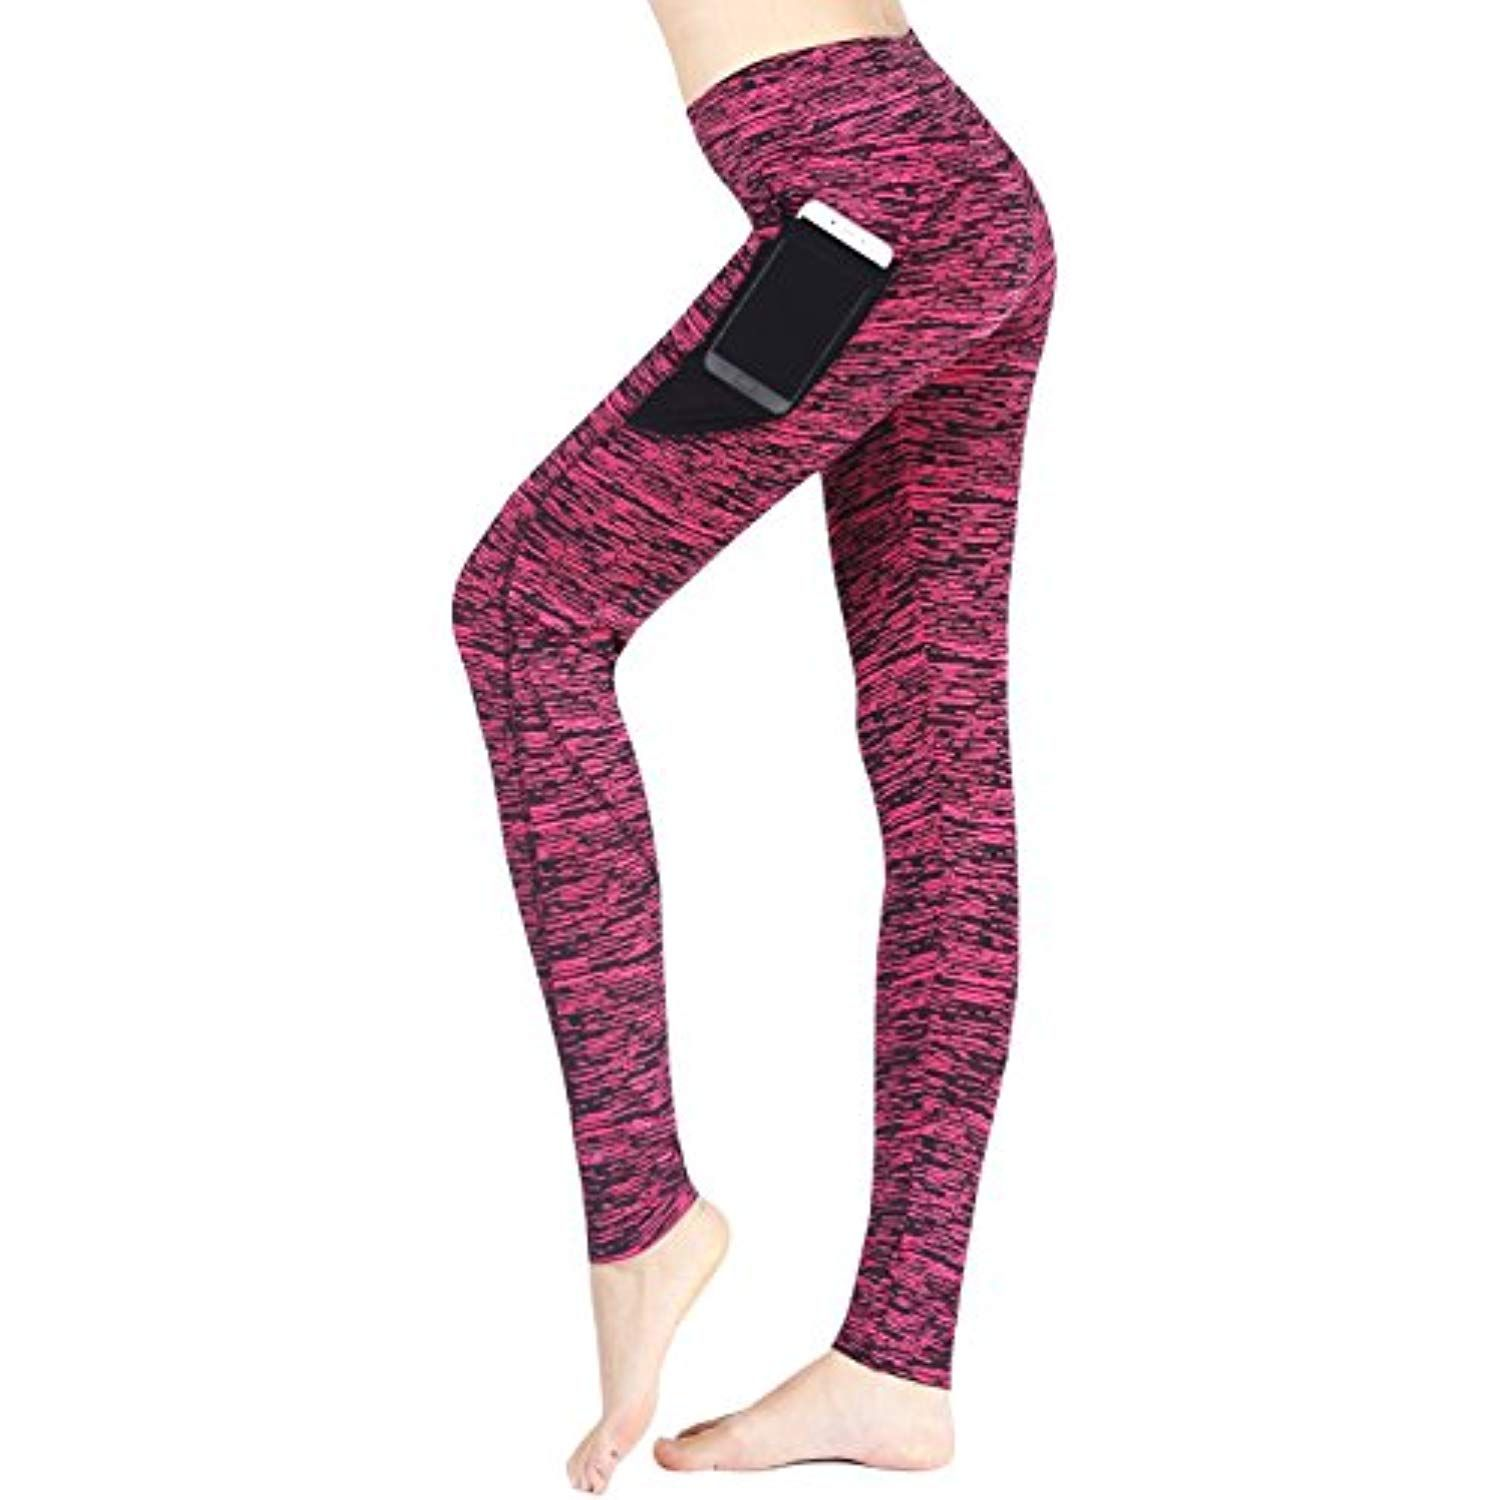 e28368a593 Neonysweets Women's Active Yoga Pants Workout Leggings with Mesh Pockets *  Details can be found by clicking on the image. (This is an affiliate link)  # ...